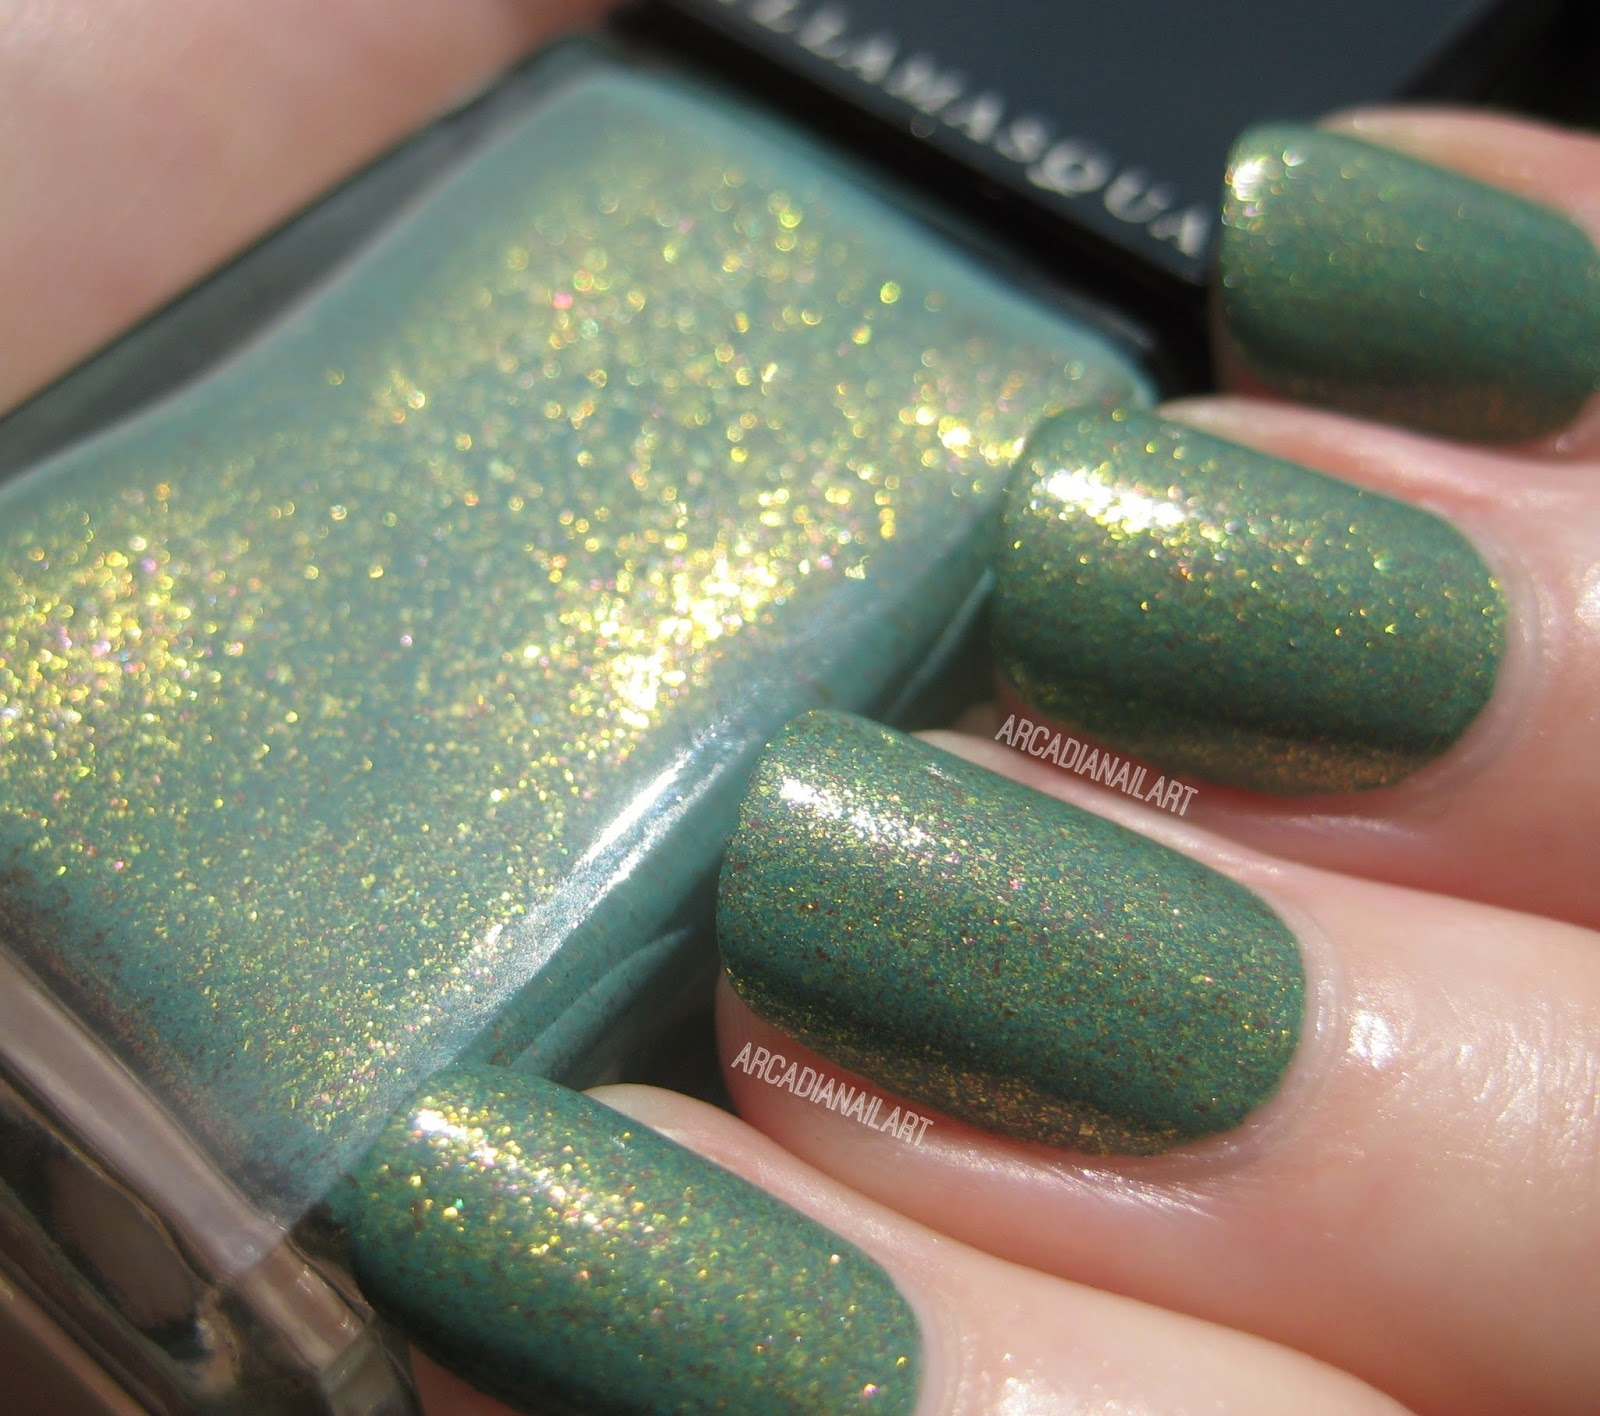 ArcadiaNailArt: Illamasqua Melange - Swatch and Review